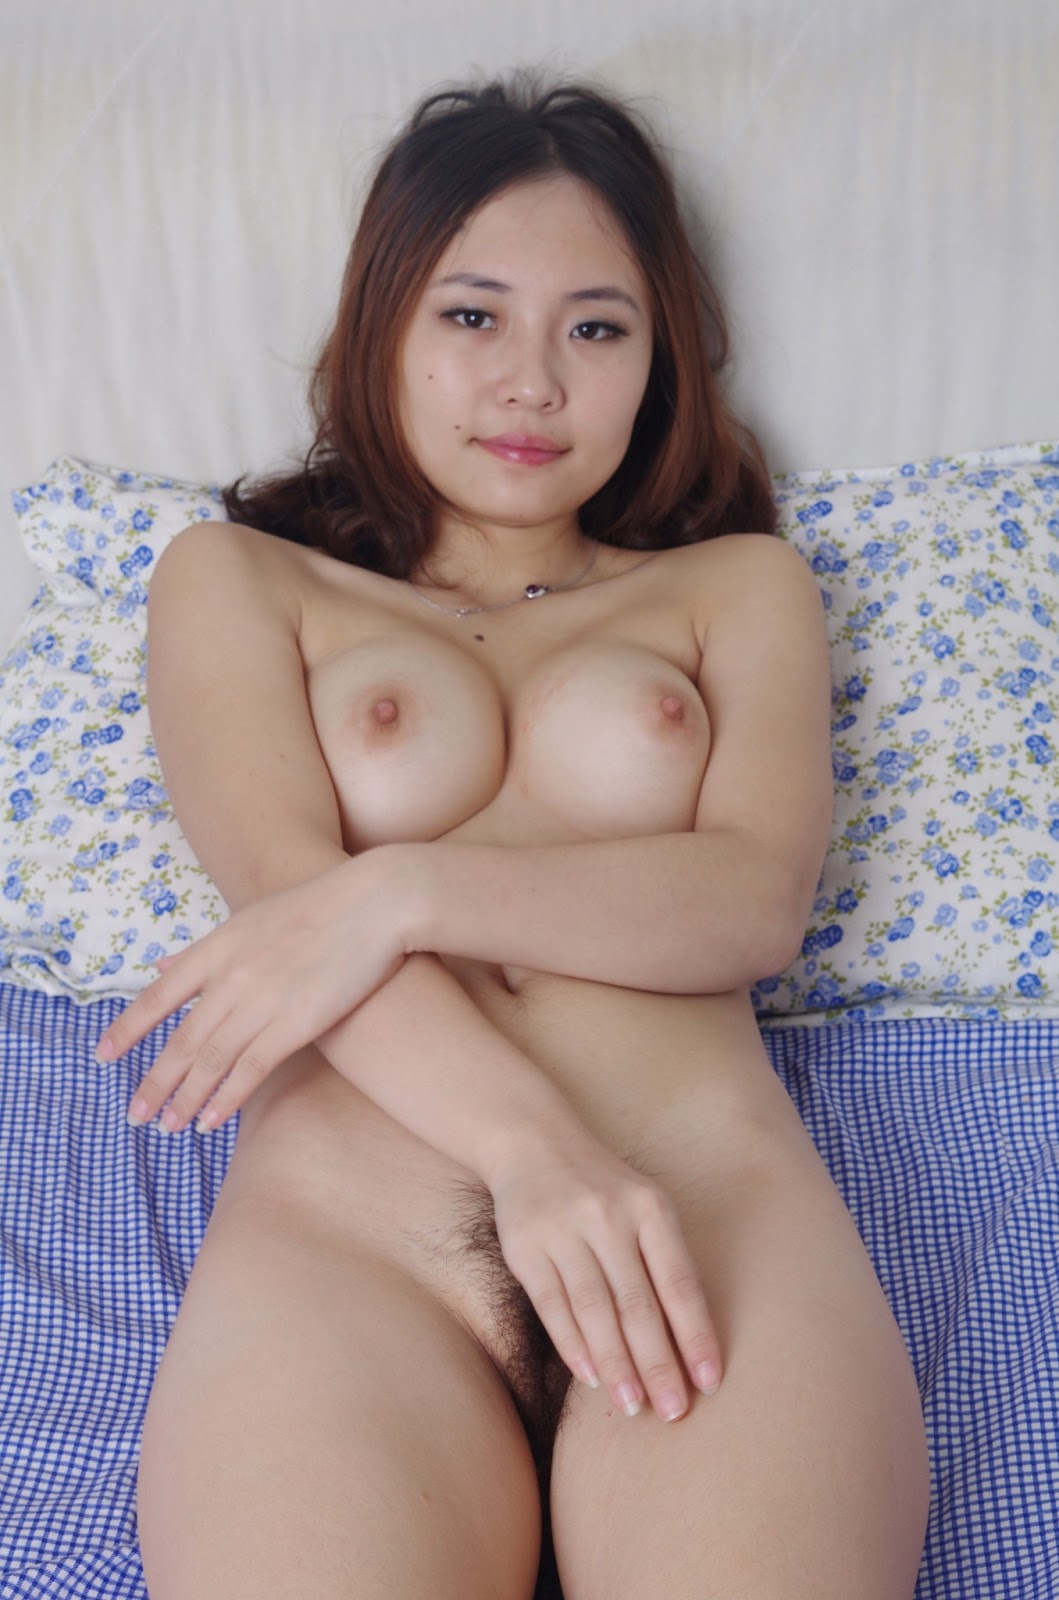 Fad 30 Cute Asian Nude Girl-8920